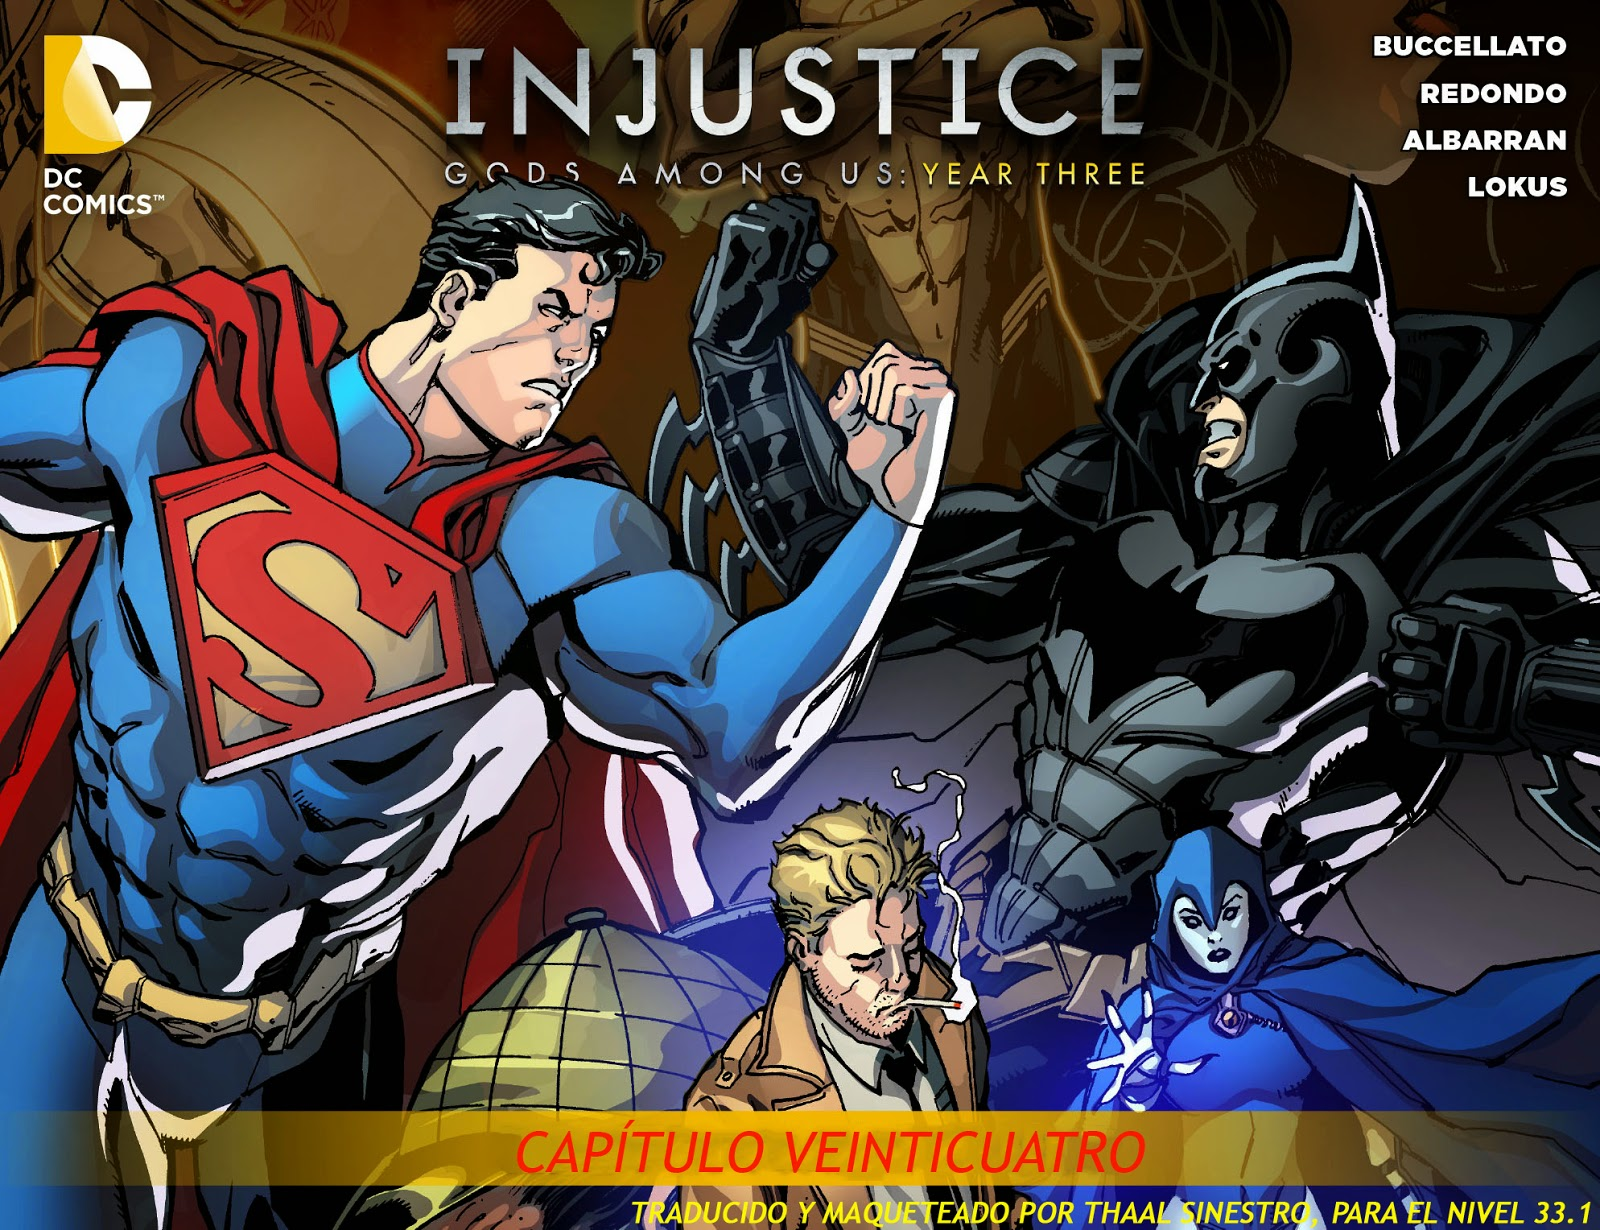 http://www.mediafire.com/download/tfgau7pnmva9yiw/INJUSTICE+24.cbz